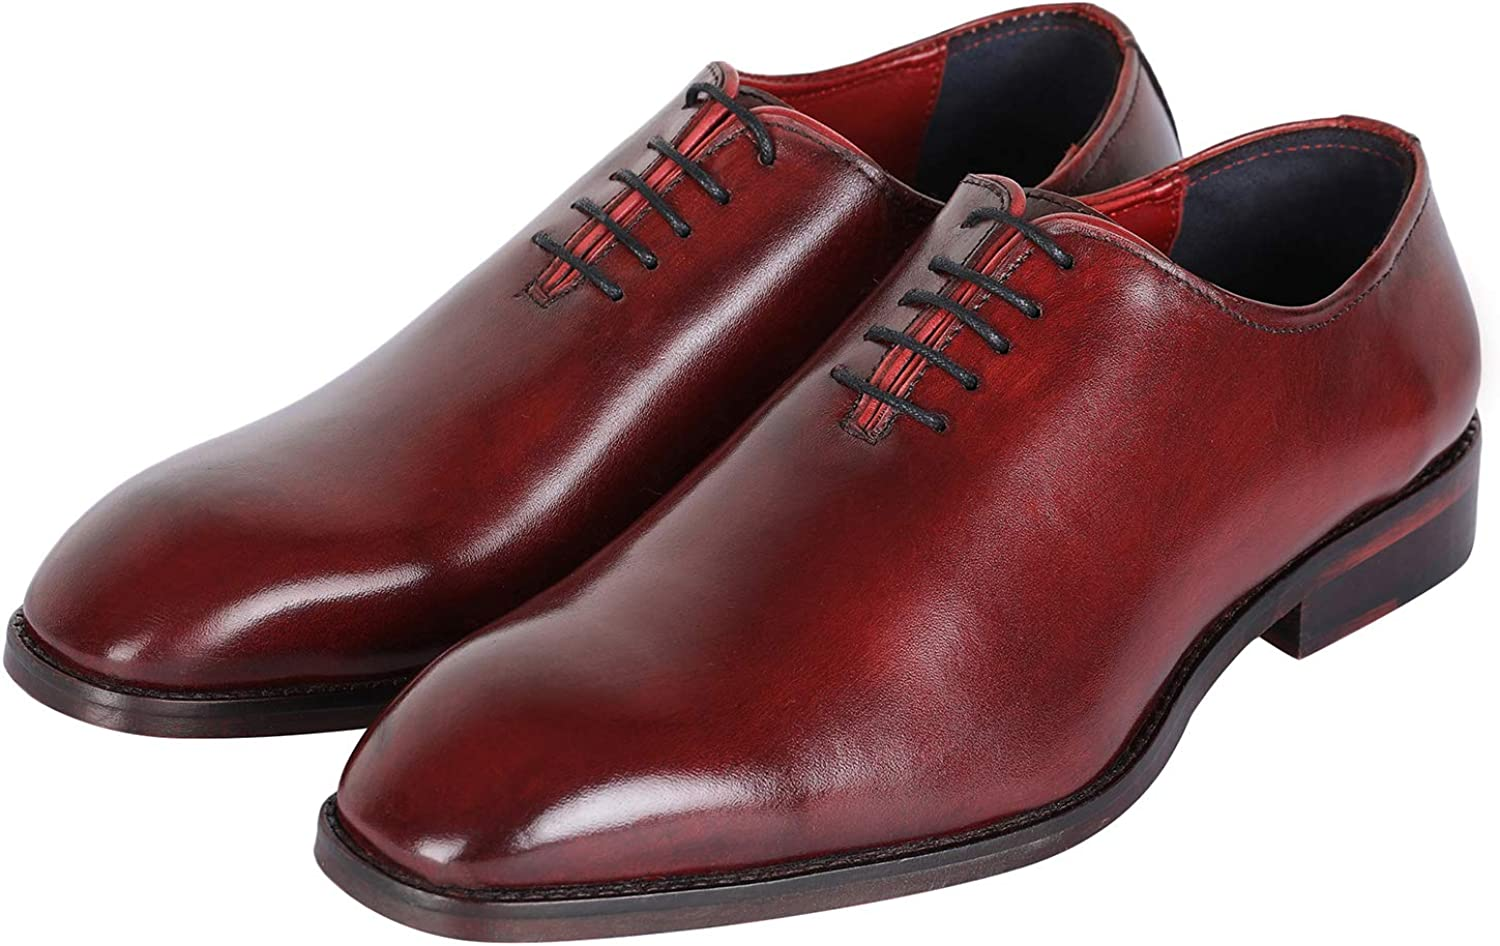 Lethato Handcrafted Wholecut Oxford Men's Genuine Leather Lace Up Dress shoes